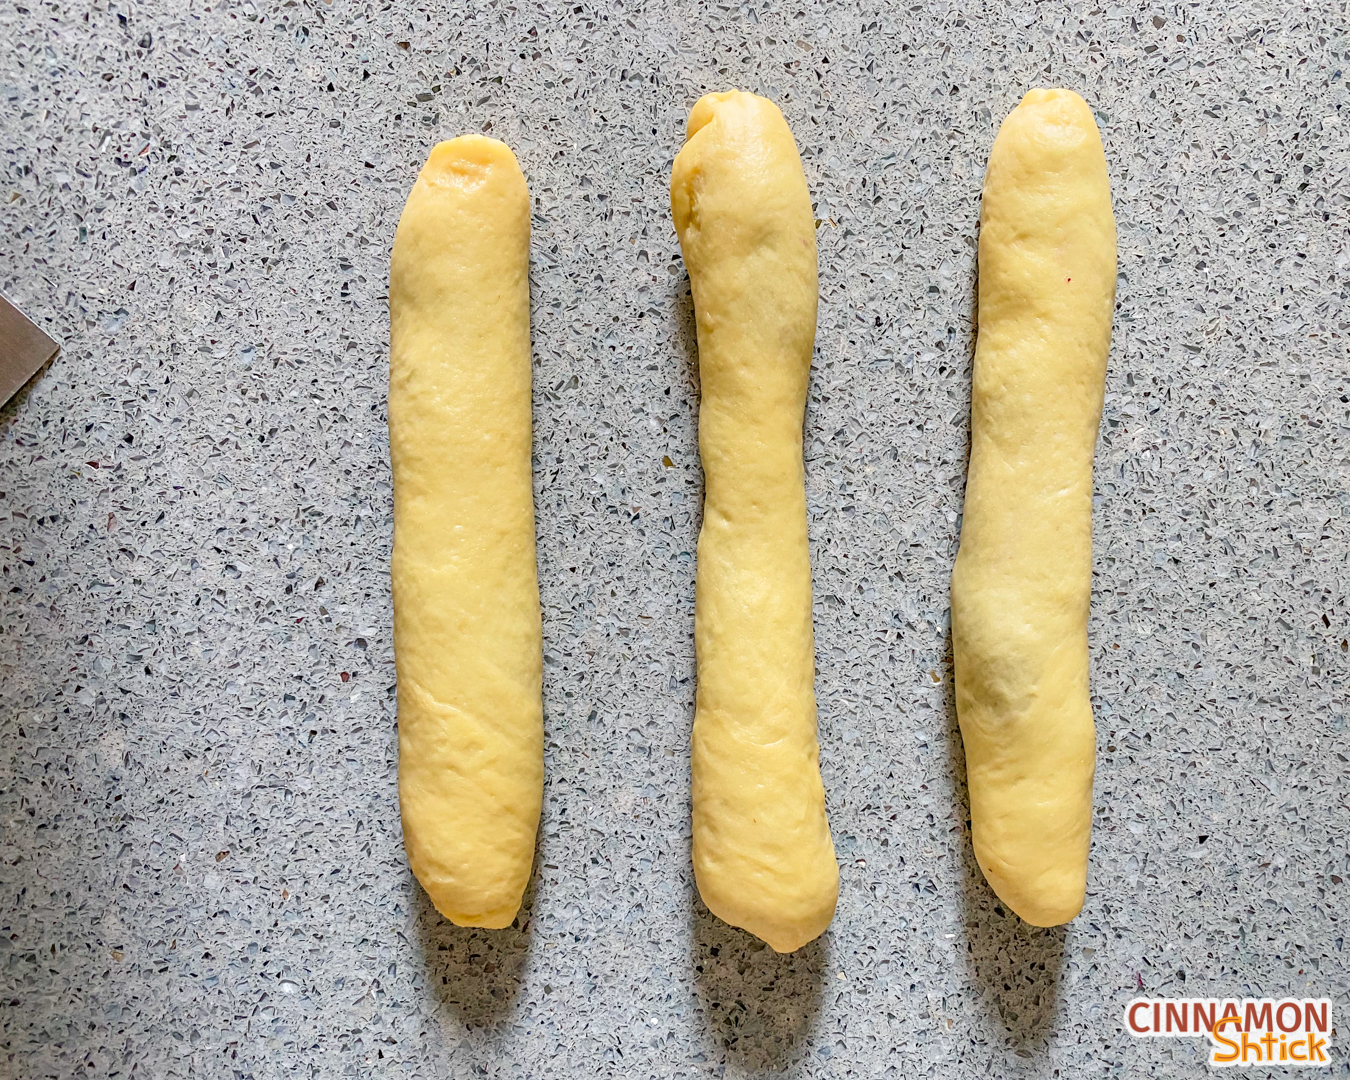 Three strands of dough, rolled up with the blueberry filling inside them.